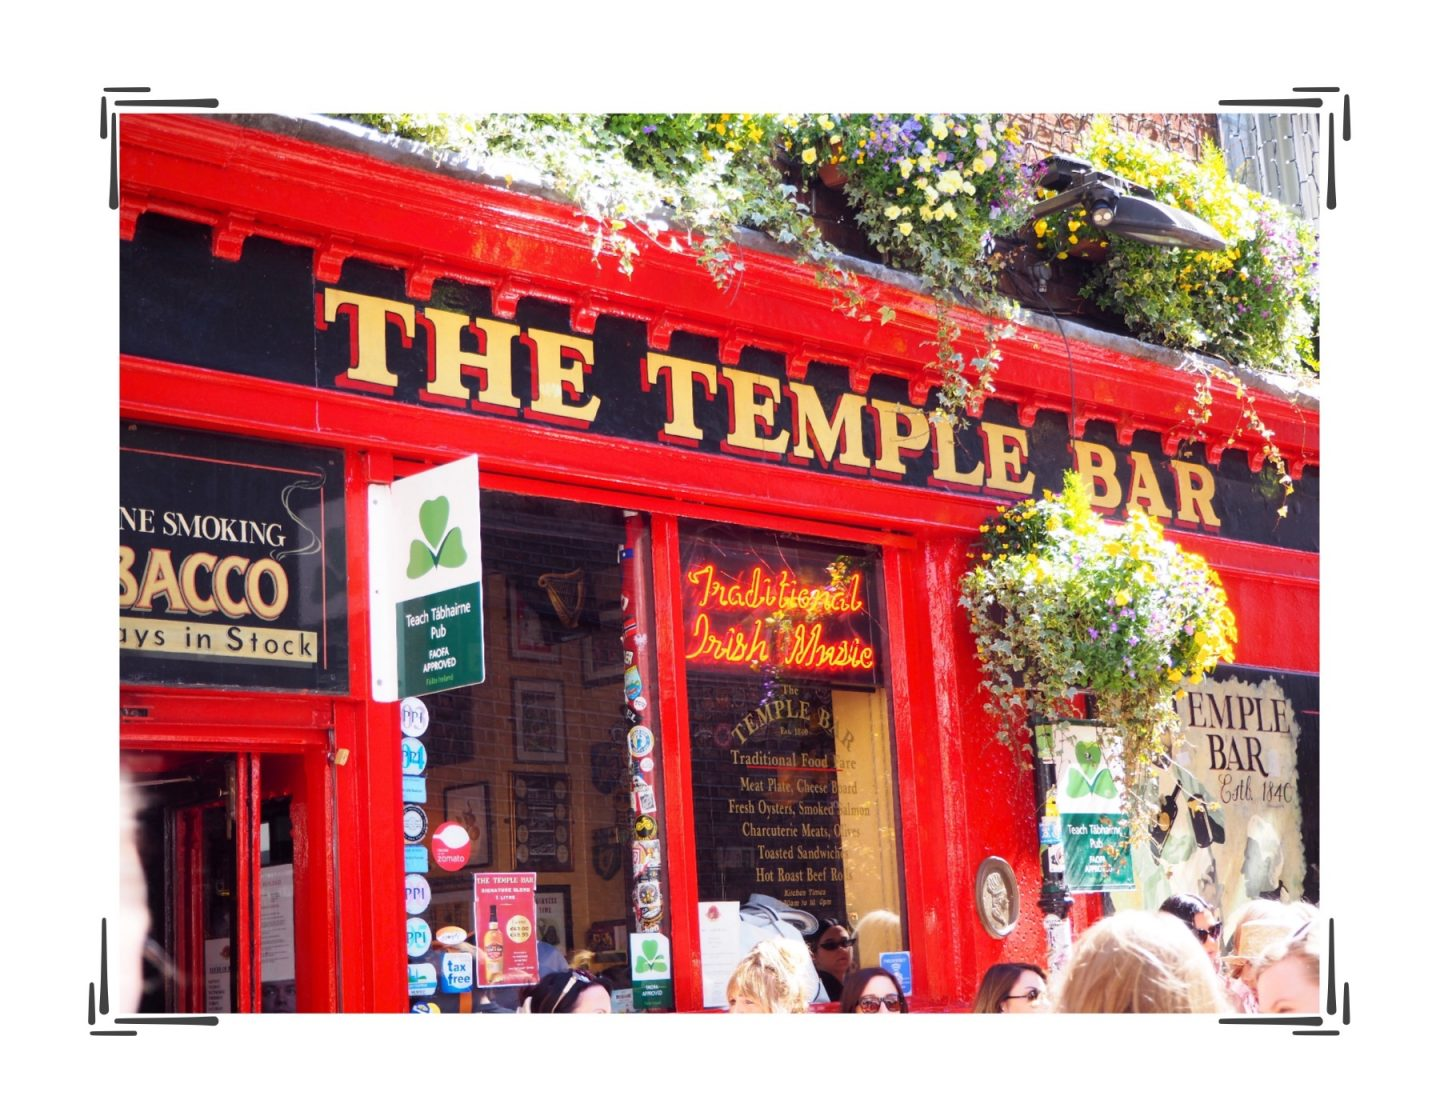 Dublin diaries; Exploring & Guinness tour - temple bar